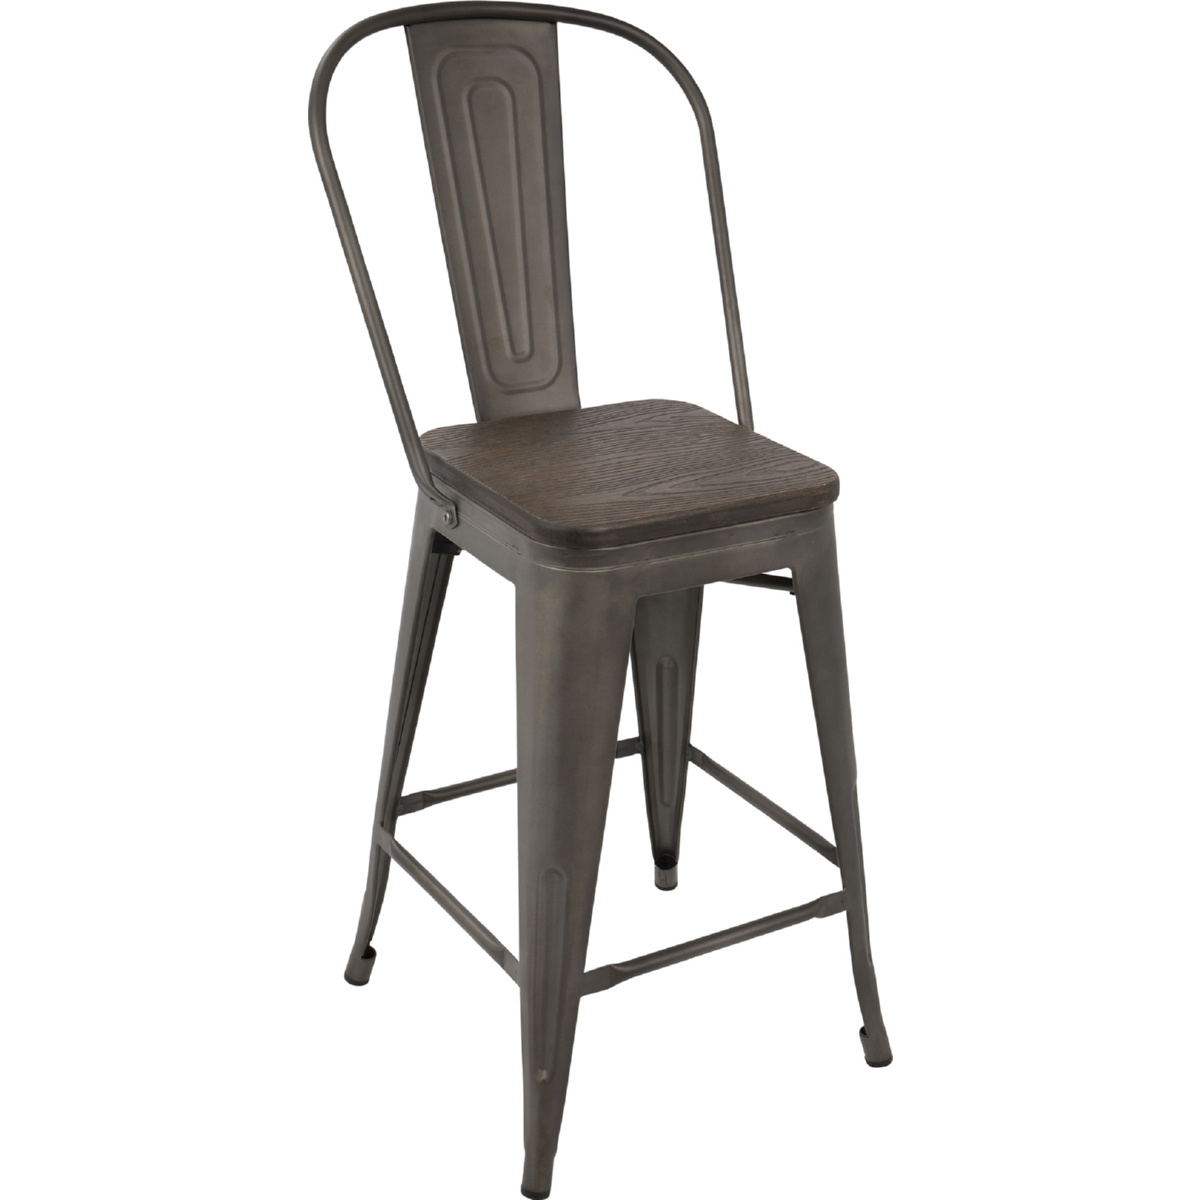 Pleasant Oregon High Back Counter Stool In Antique Metal Espresso Bamboo Set Of 2 By Lumisource Short Links Chair Design For Home Short Linksinfo